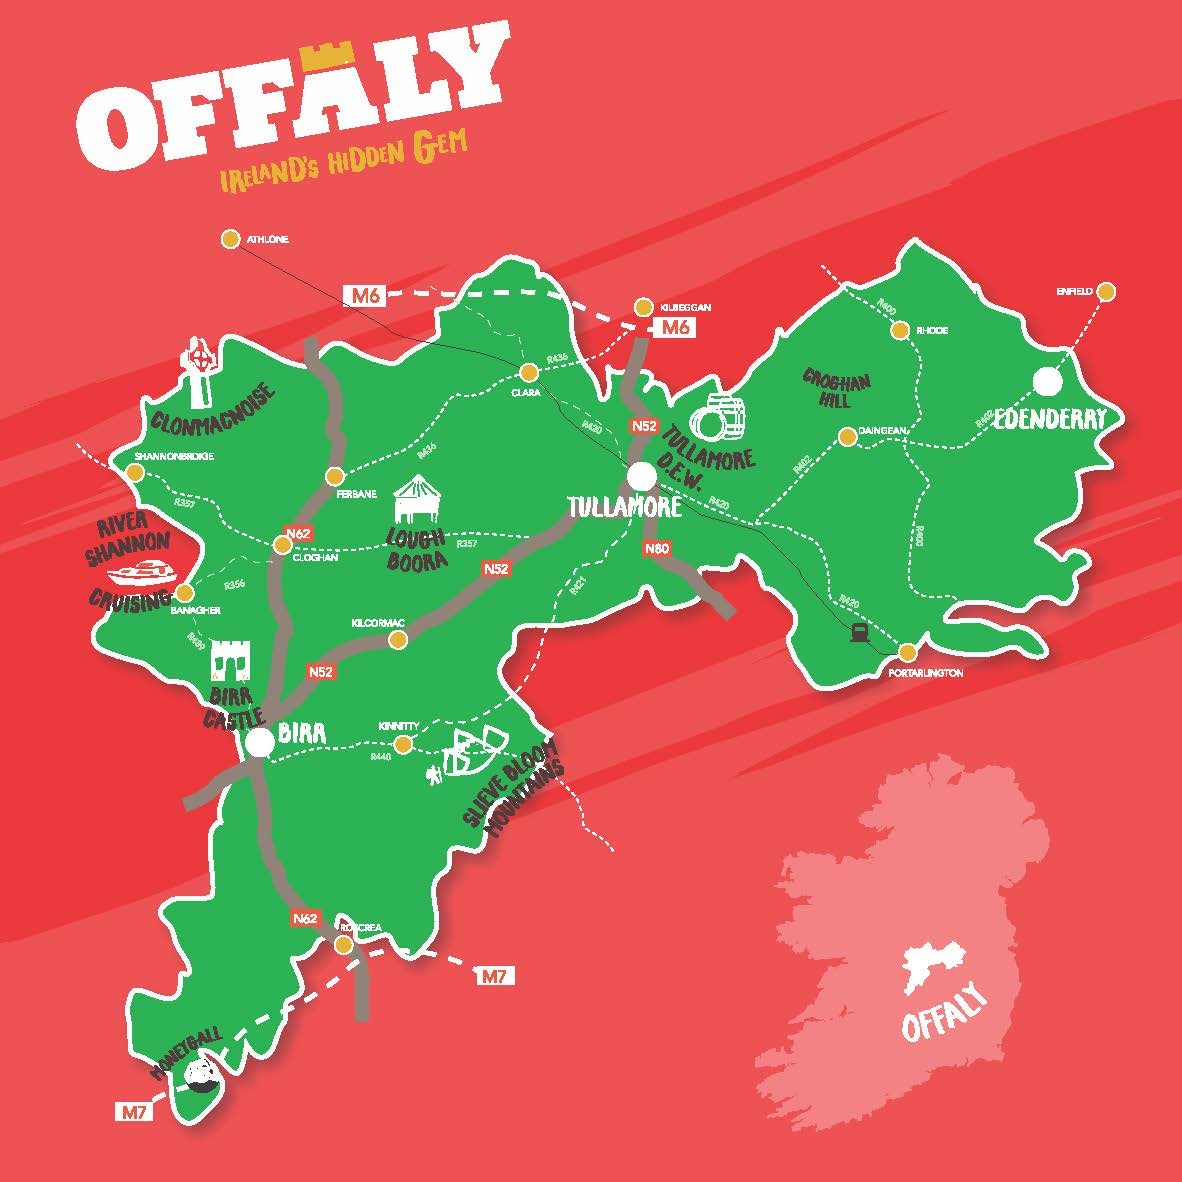 Offaly Map Passport - Local Link Laois Offaly